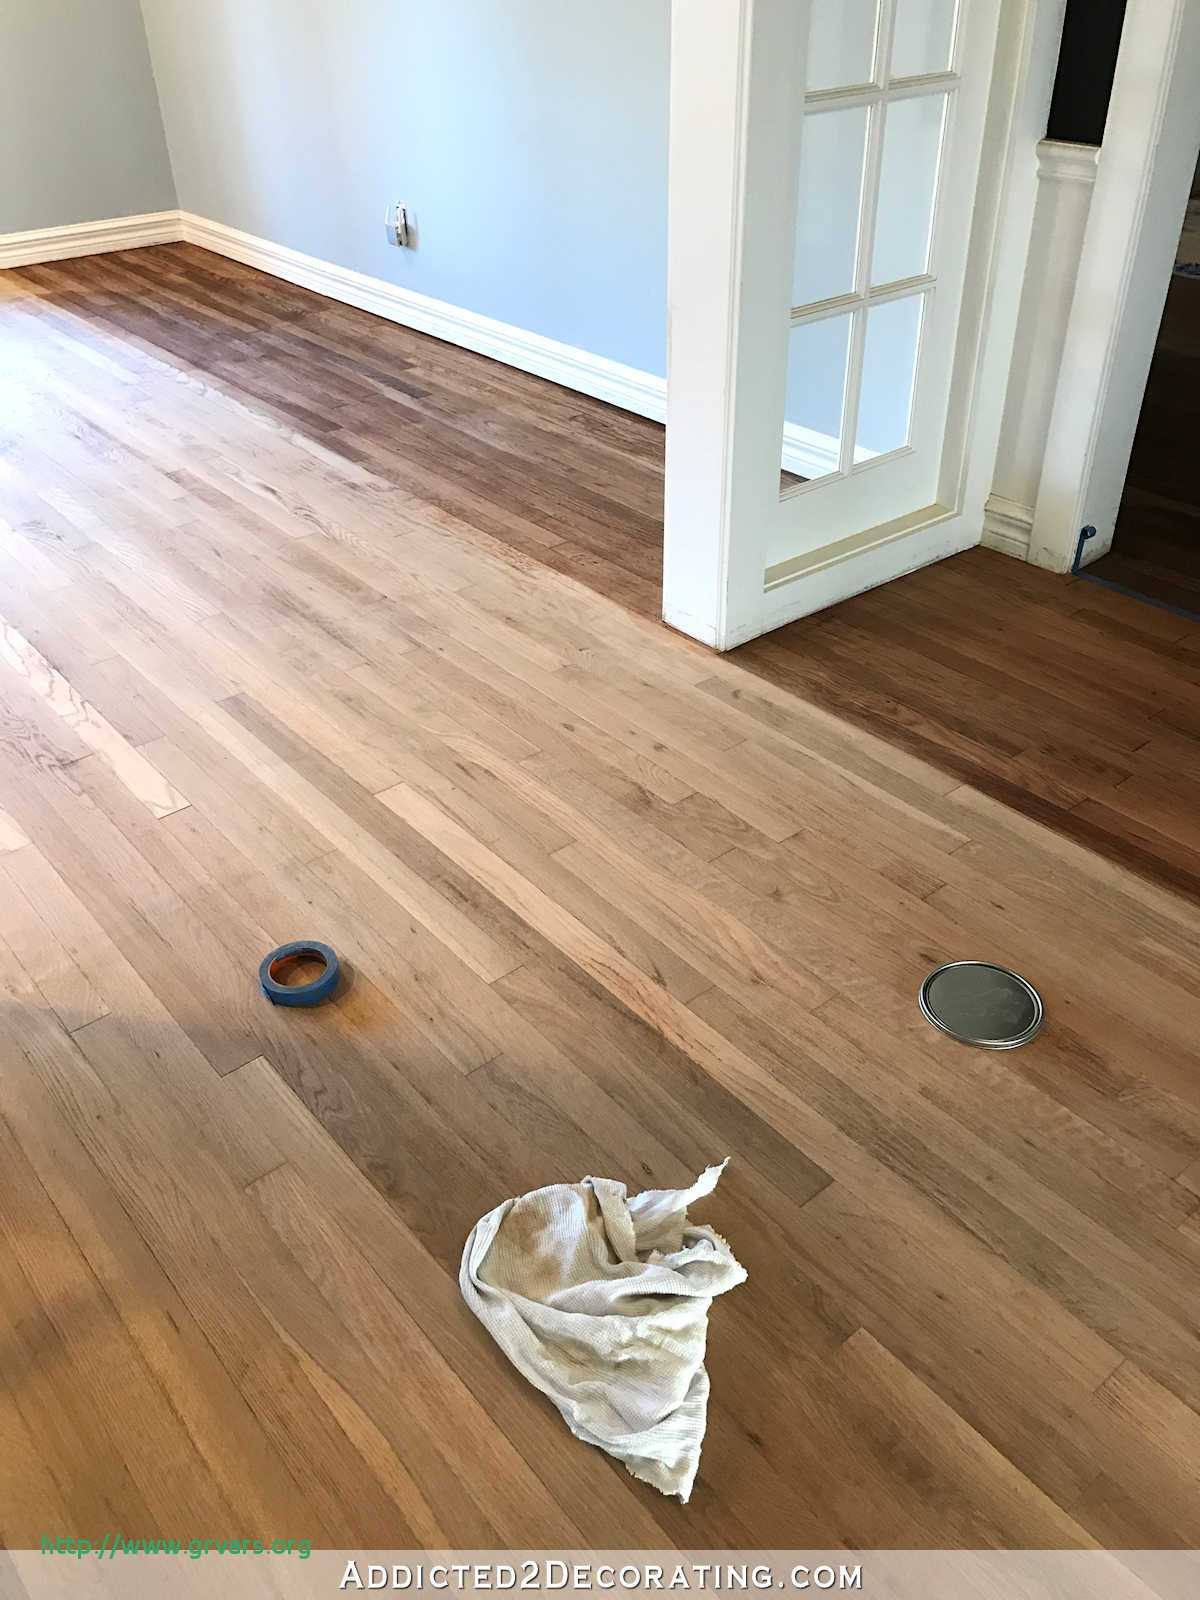 14 attractive Hardwood Floor Refinishing Omaha 2021 free download hardwood floor refinishing omaha of 15 luxe when can i put furniture on refinished hardwood floors inside flooring 5 where when can i put furniture on refinished hardwood floors inspirant ad